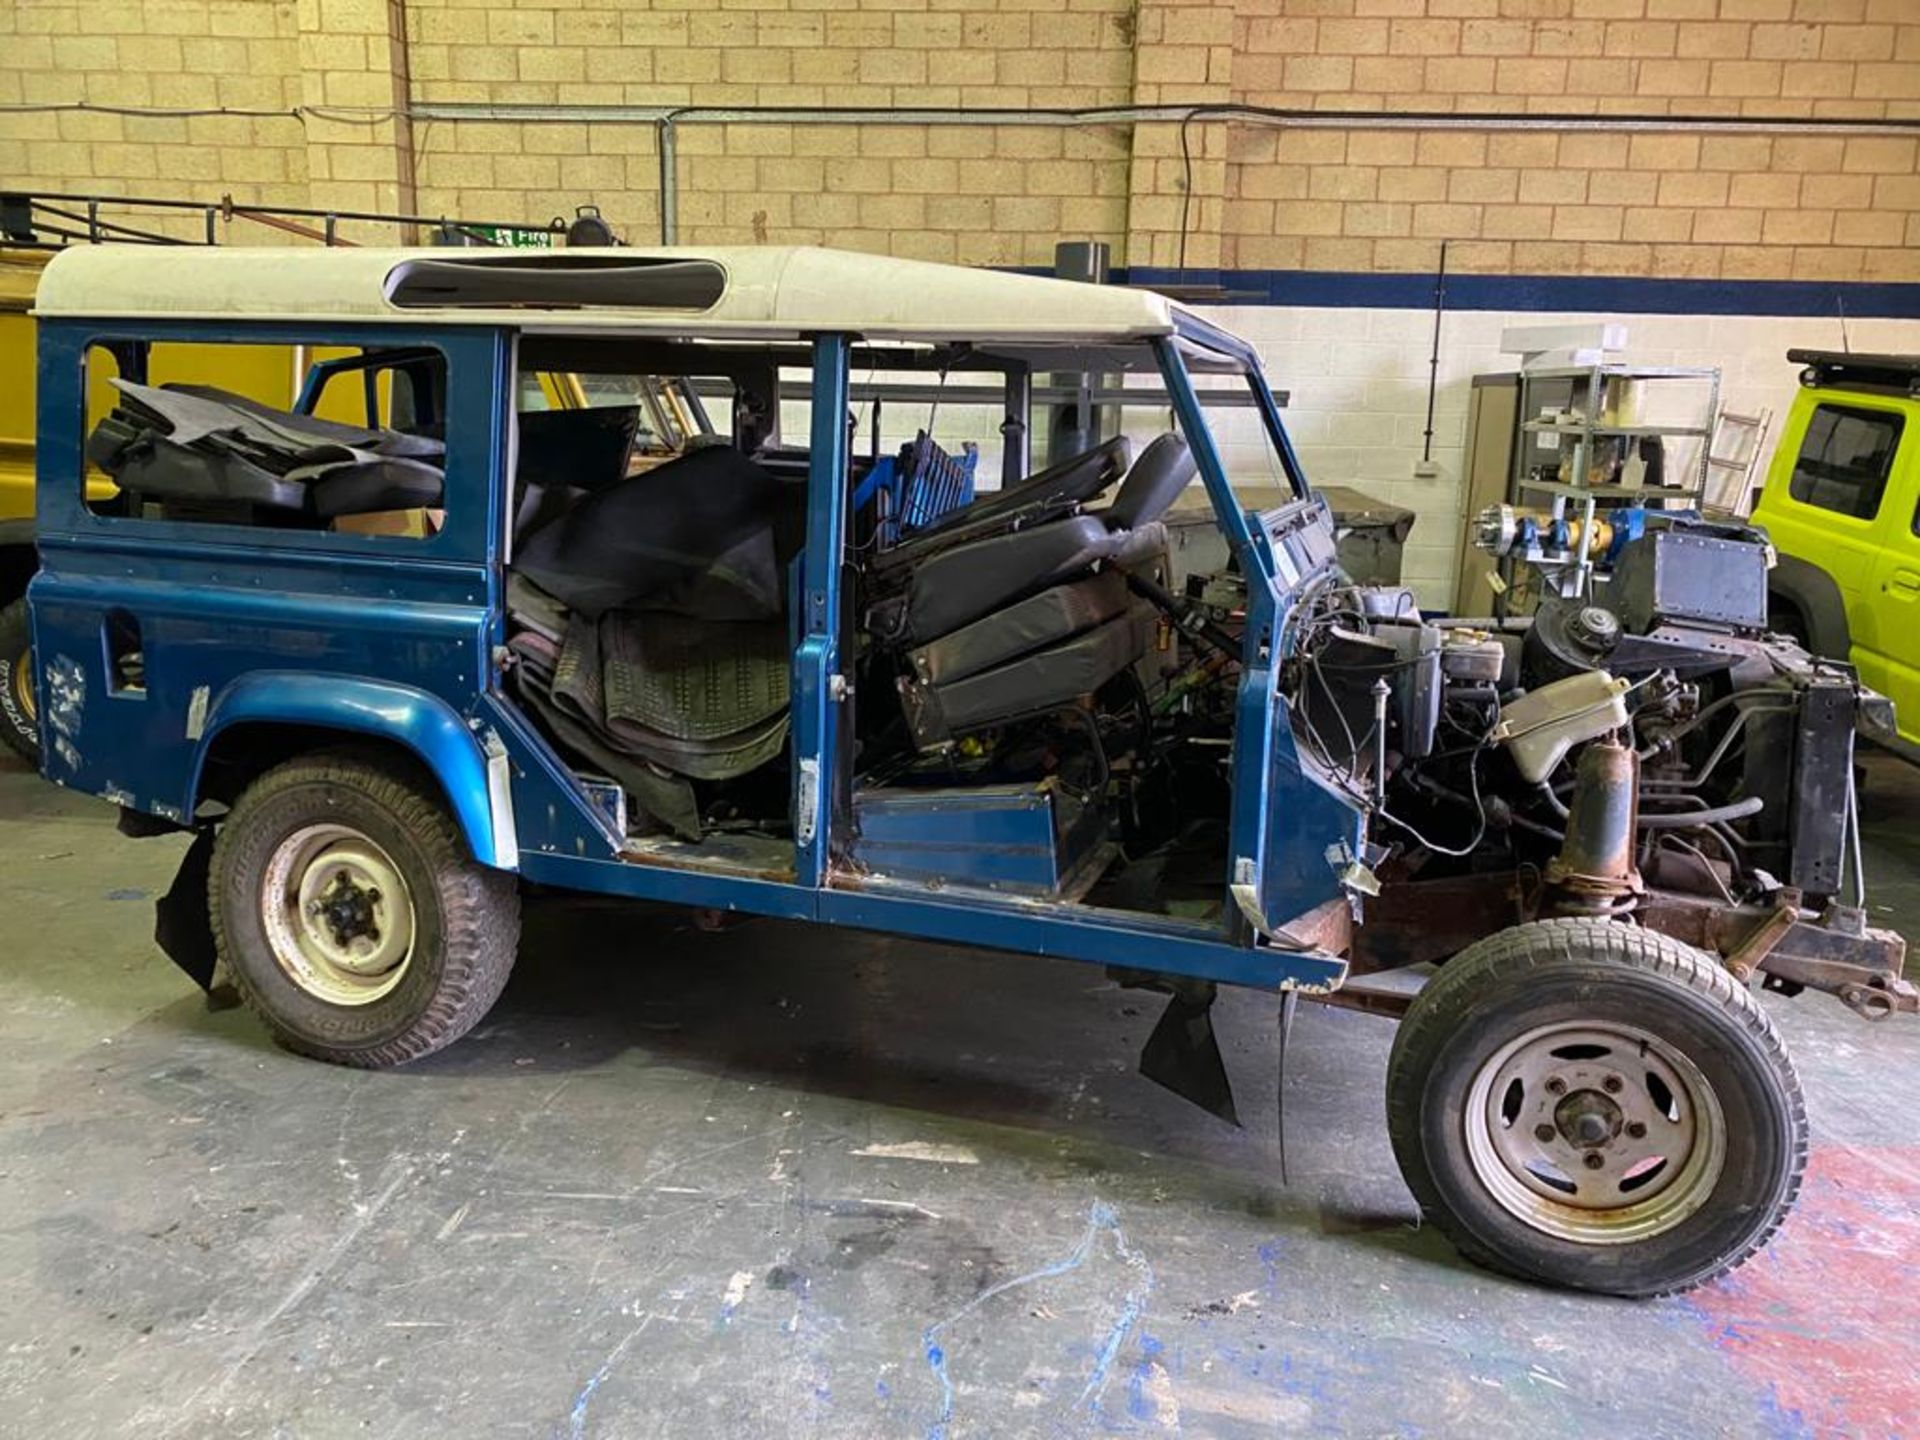 Land Rover 110 County, 300 TDI Engine Appears Mostly Complete - No Bumper, Bonnet, Glass etc As - Image 5 of 26